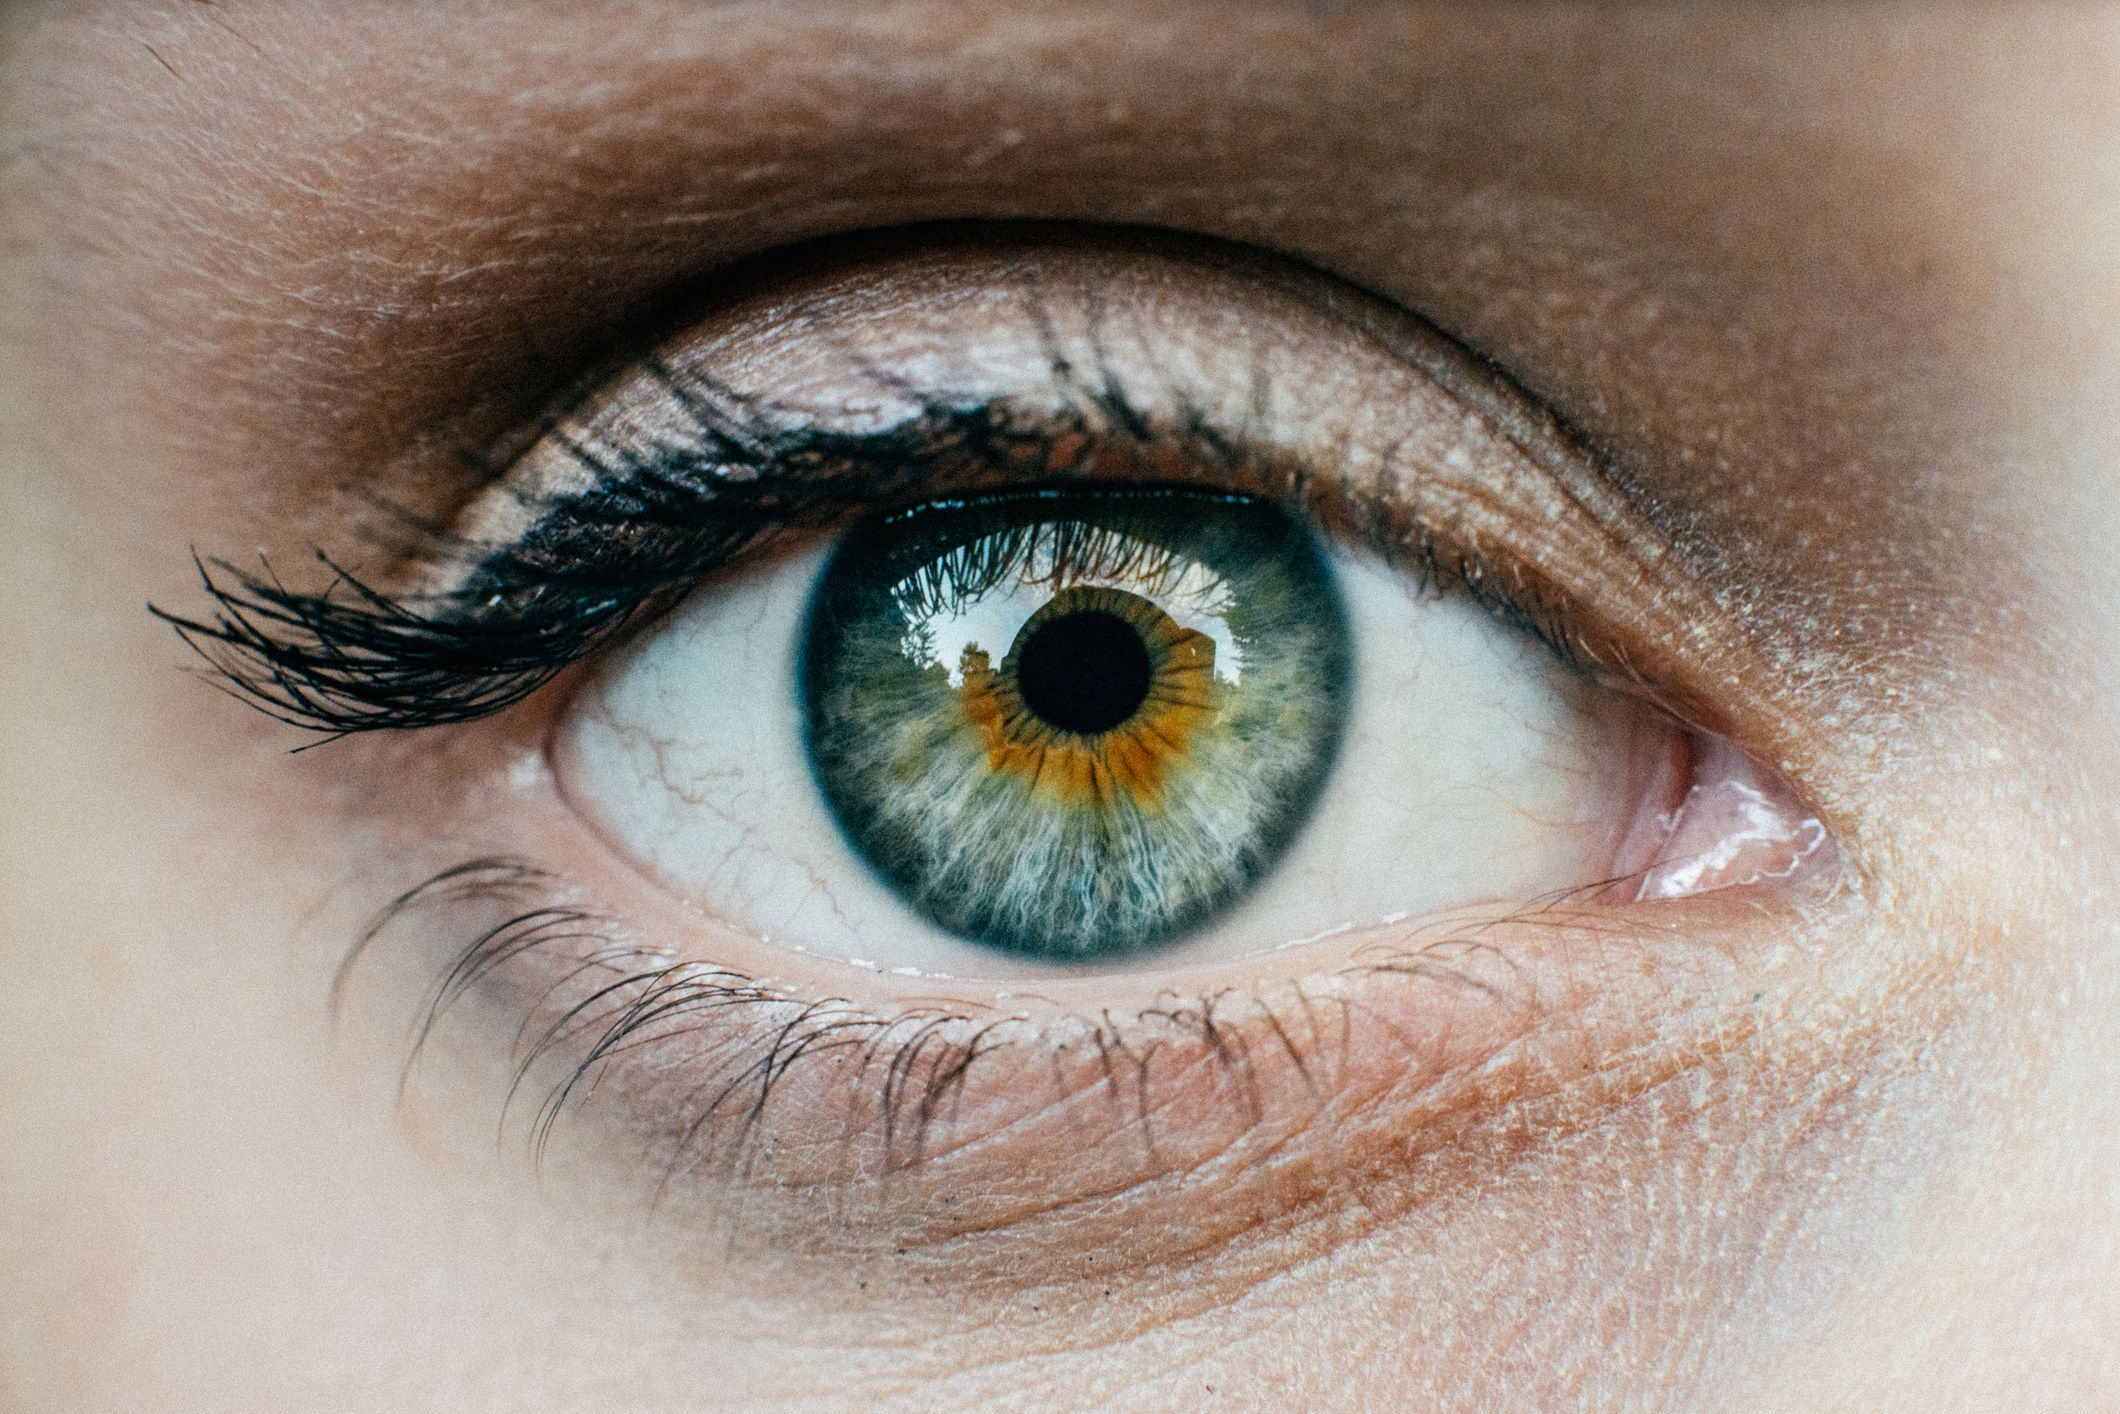 Causes, symptoms and dangerous effects of conjunctivitis in children 74